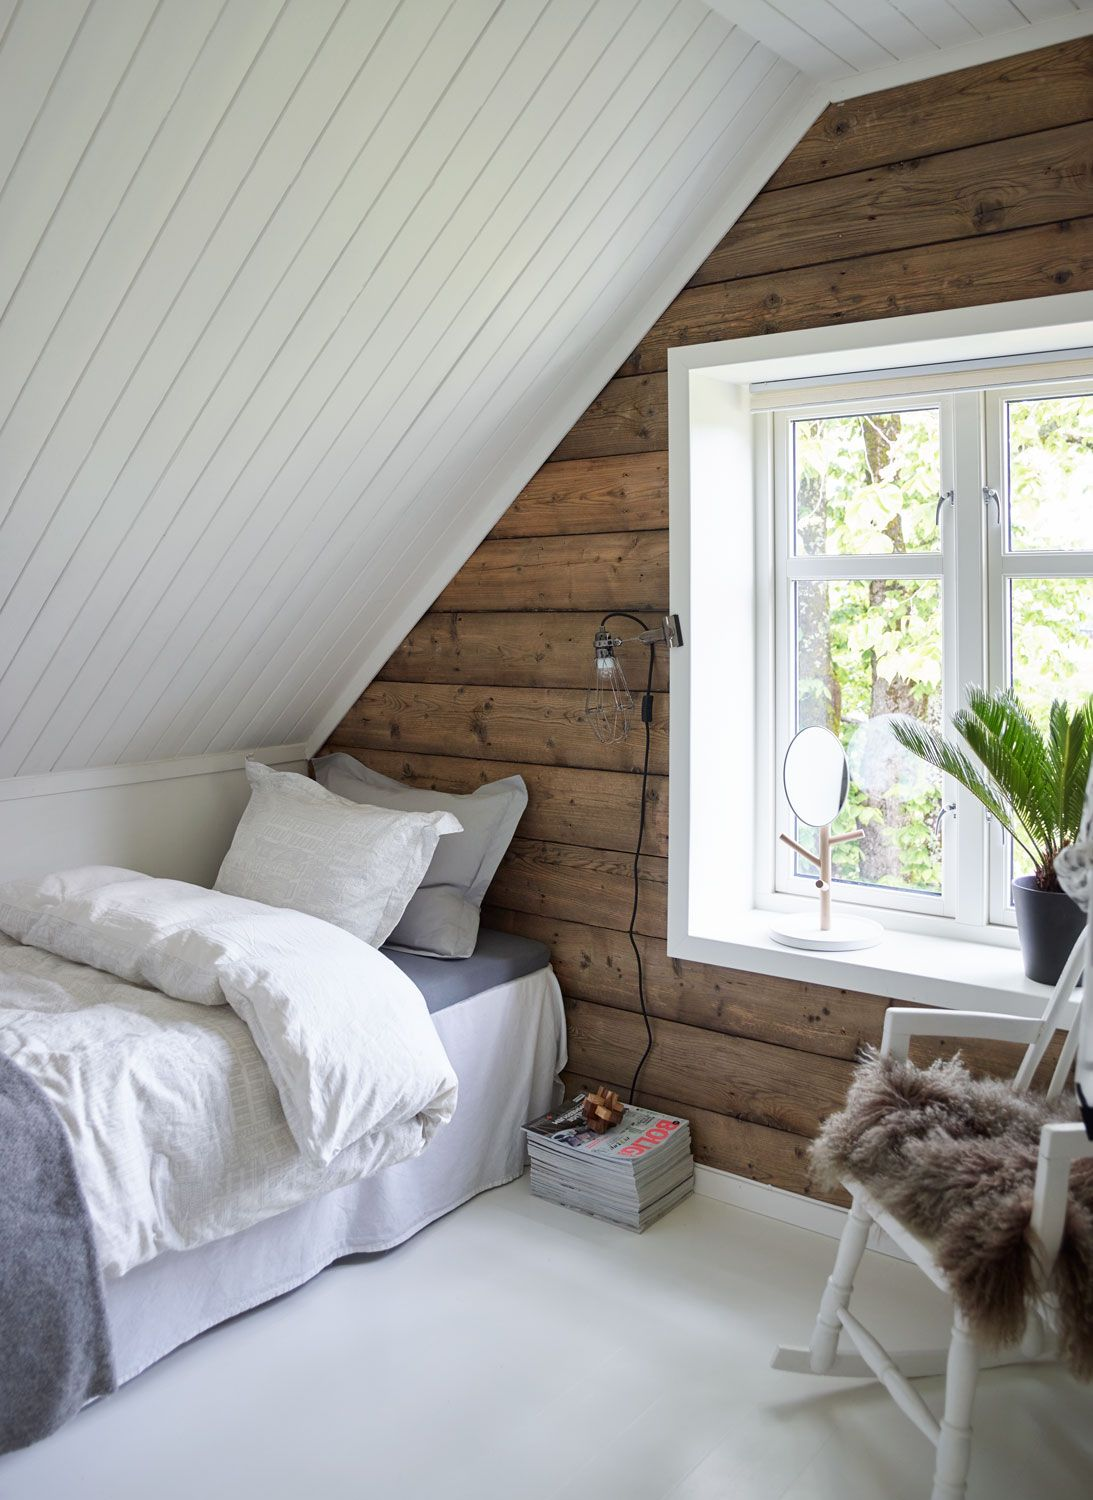 Attic bedroom design and d cor tips small attic bedrooms Single bedroom design ideas